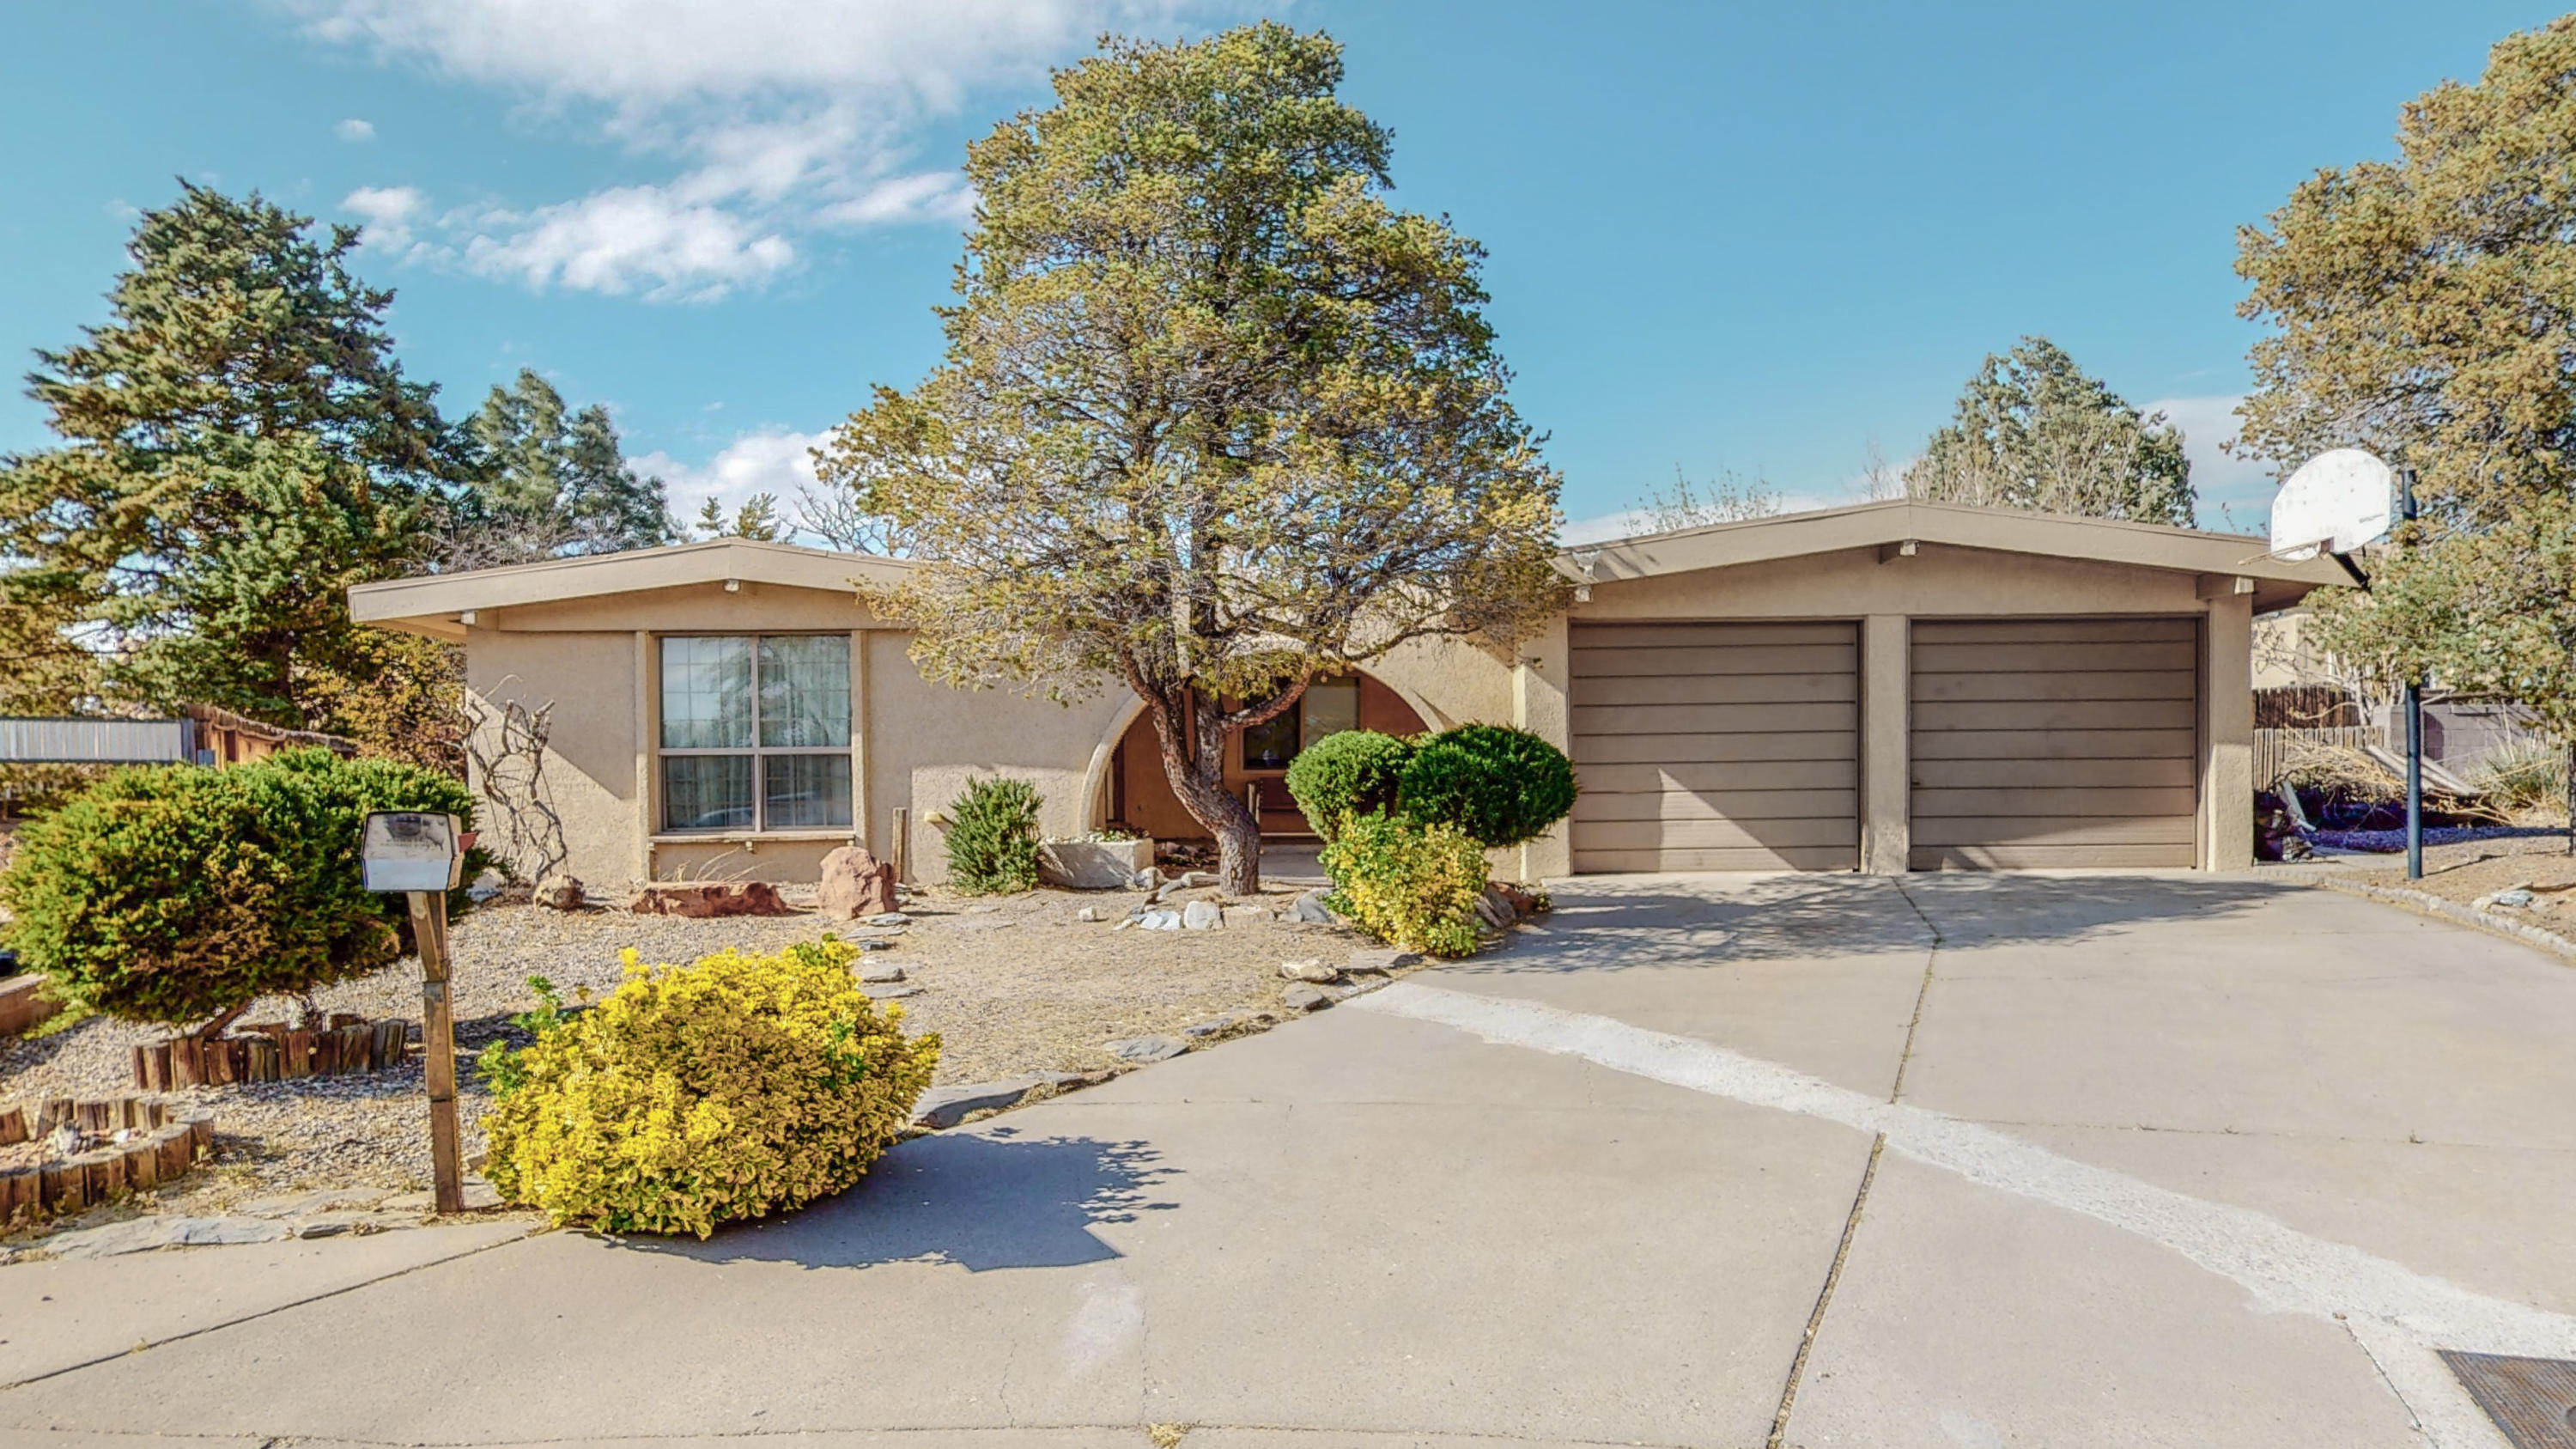 Great Choice on a quiet cul'de'sac. Two Living Areas ---one with wood-burning Fireplace. Galley Kitchen with Breakfast Bar and Adjacent Dining Room. Family Room that opens to a Covered Deck and Large Fenced Yard. Dog Kennel and Storage Building are Fenced Separately. Convenient Location for shopping, schools, entertainment & more.*Click on second photo for virtual tour.*